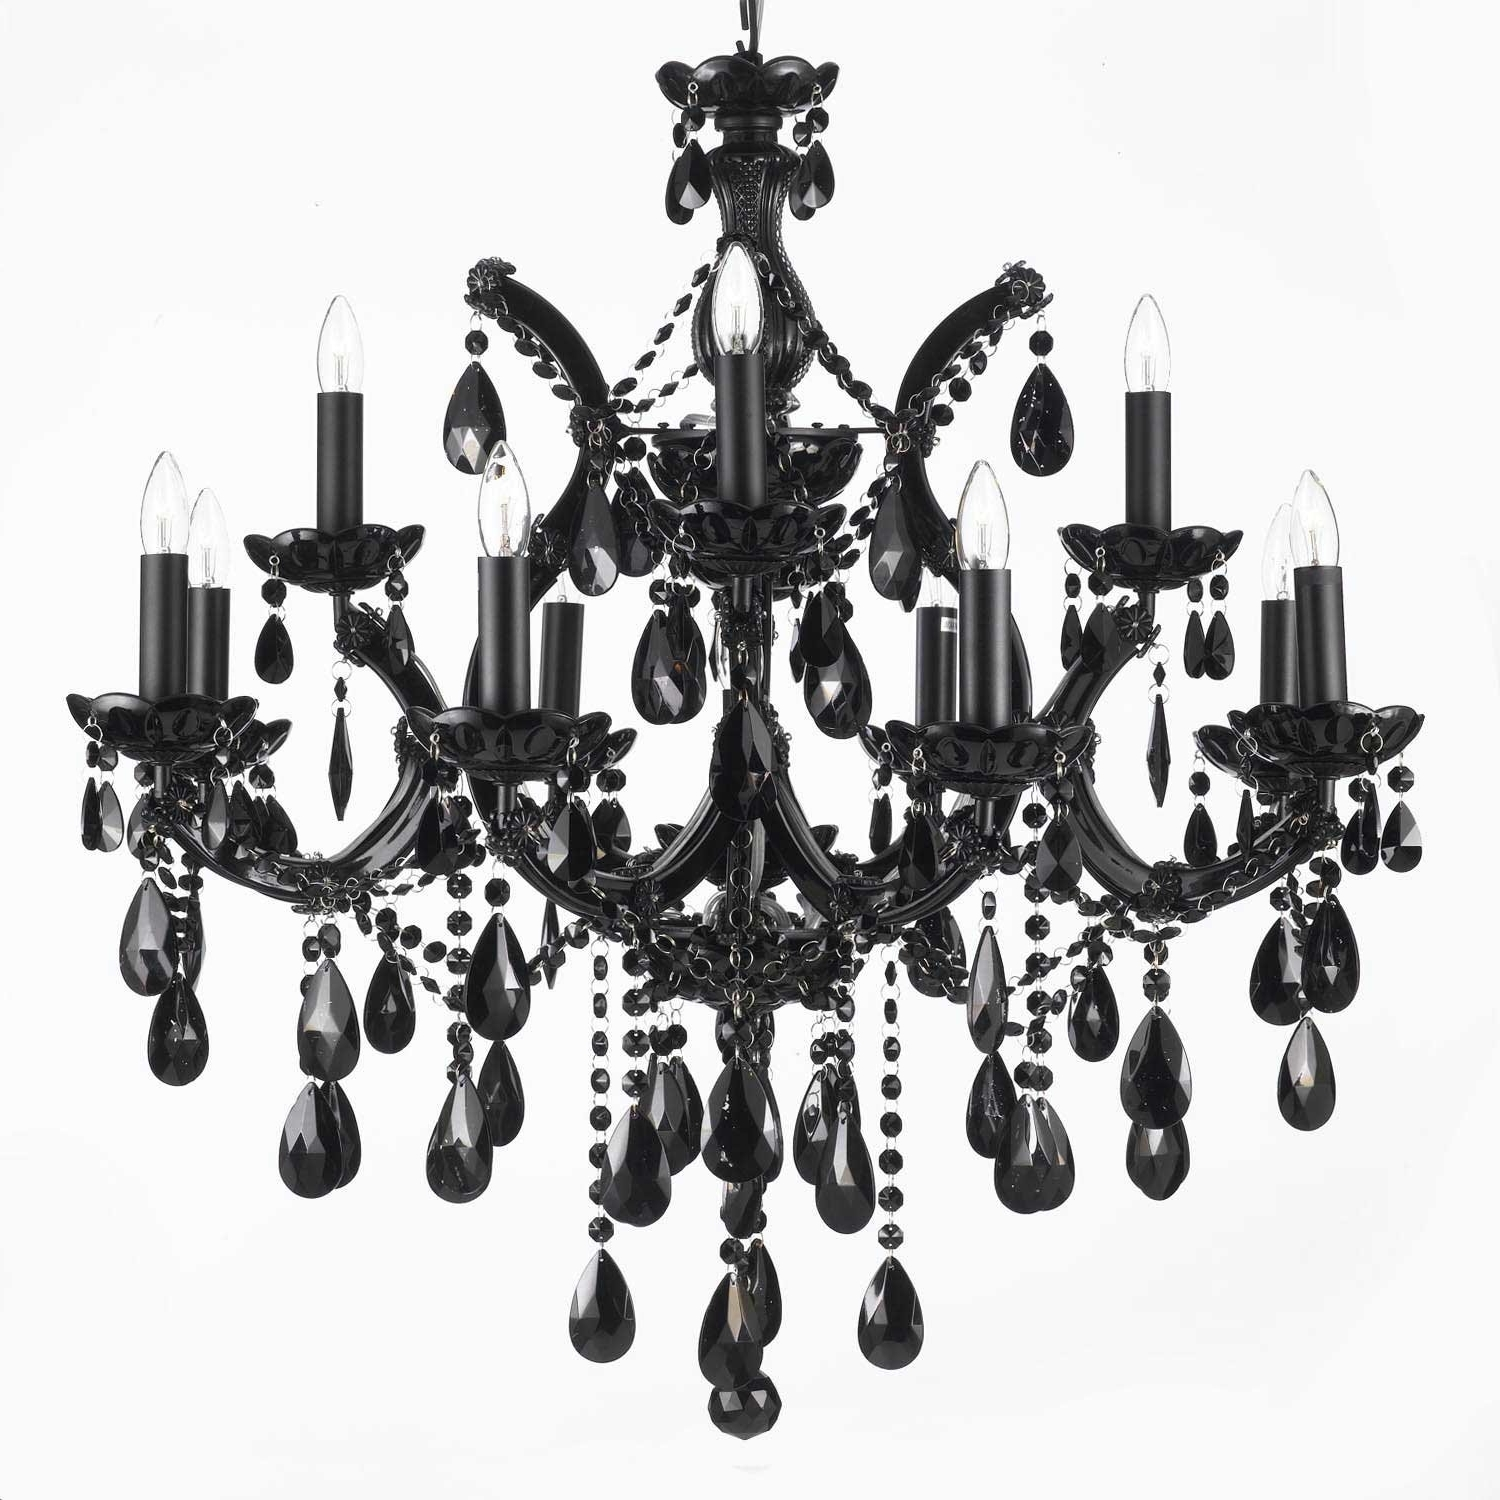 Jet Black Chandelier Crystal Lighting 30X28 - - Amazon throughout Recent Black Chandelier